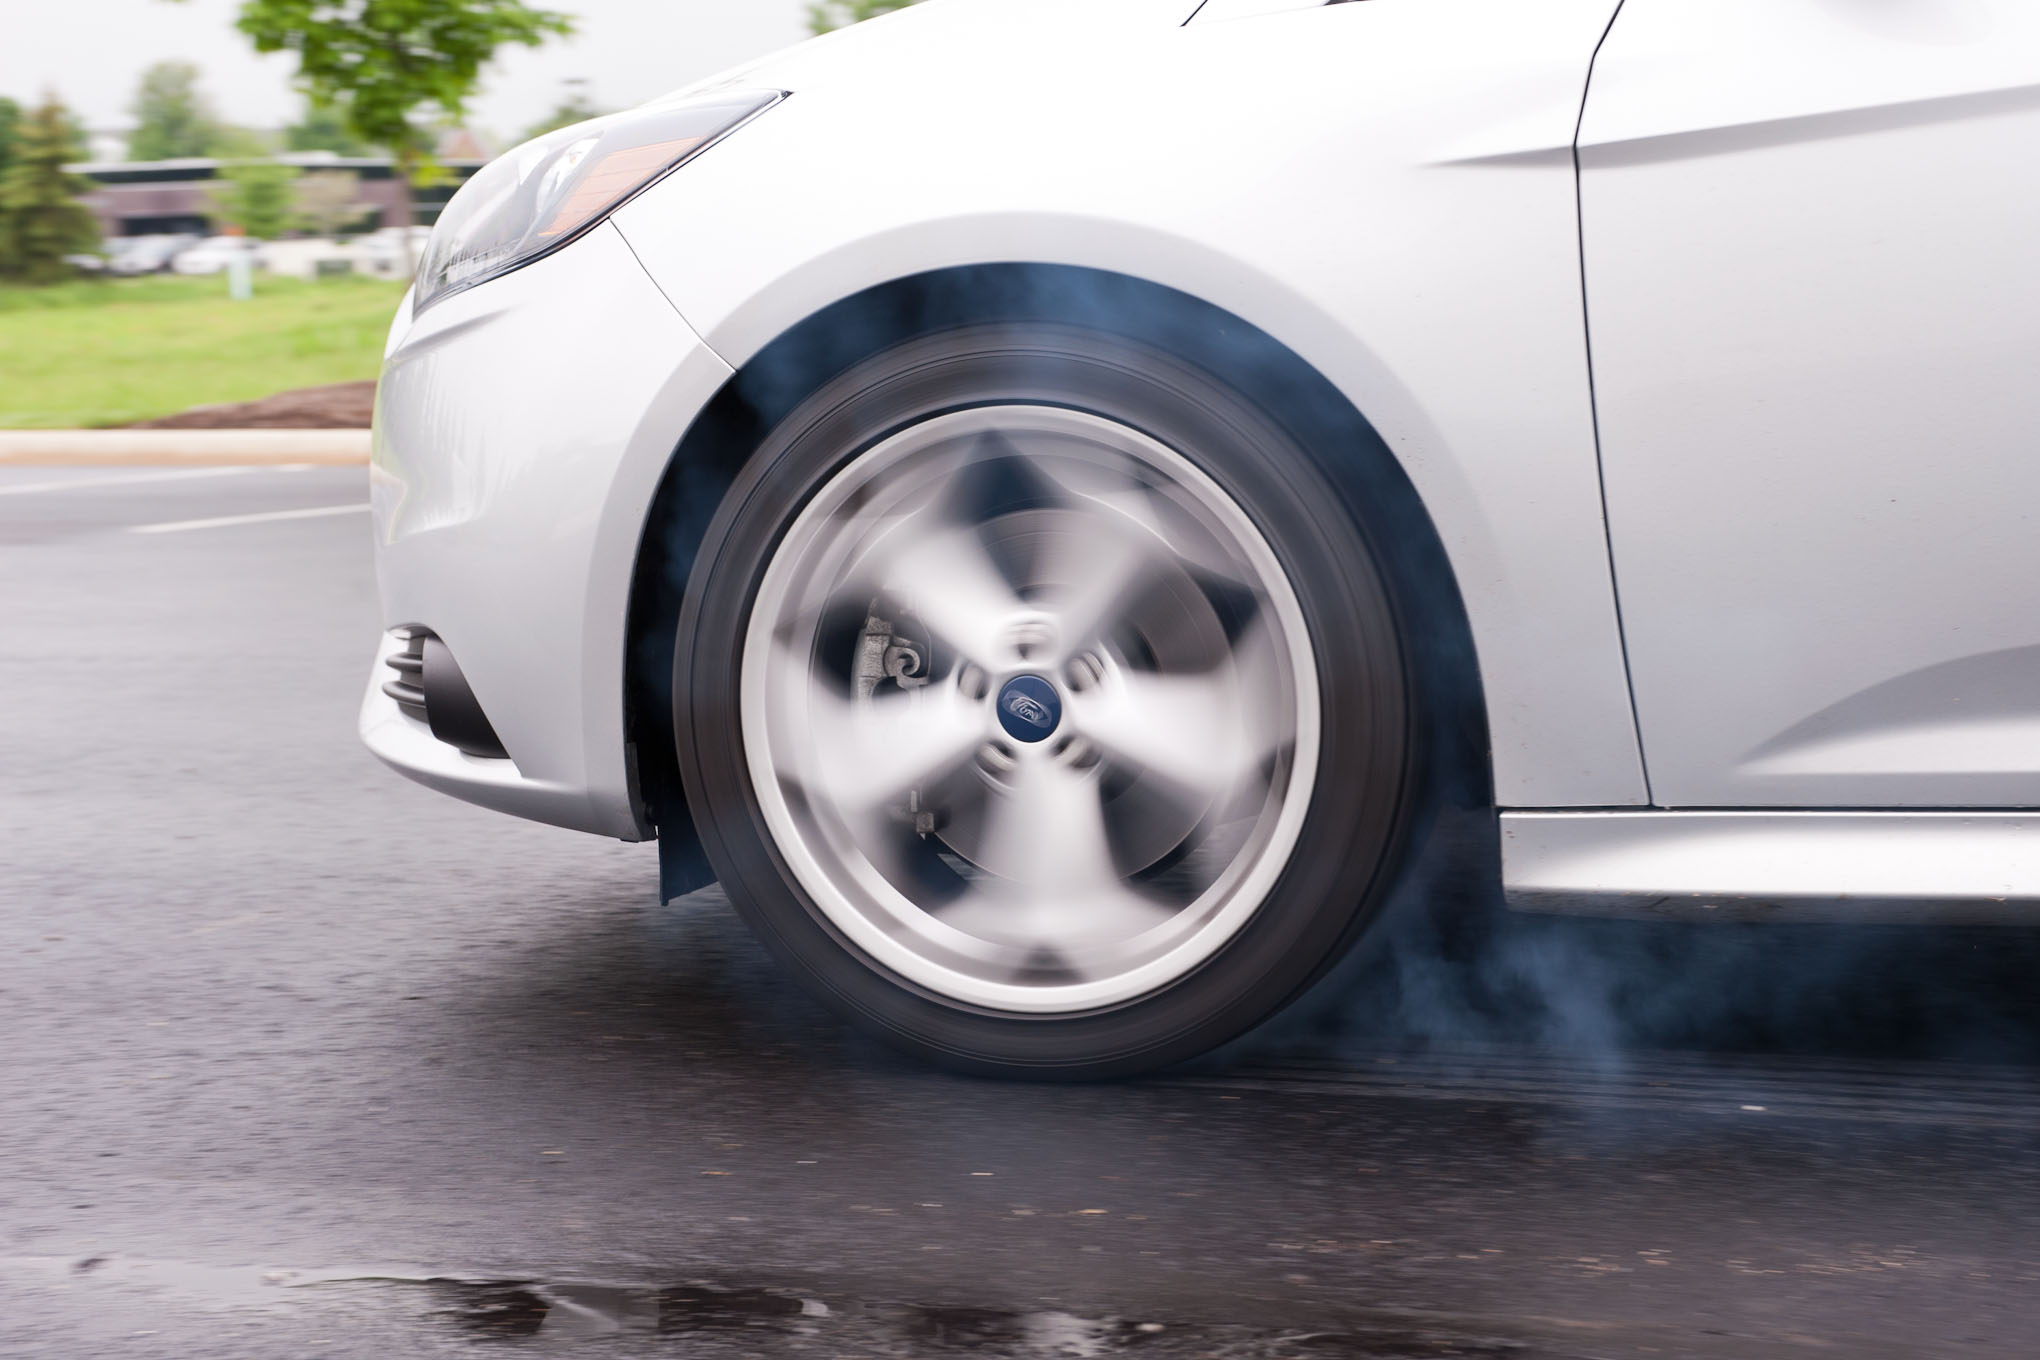 2013 Ford Focus St Tire Smoke11